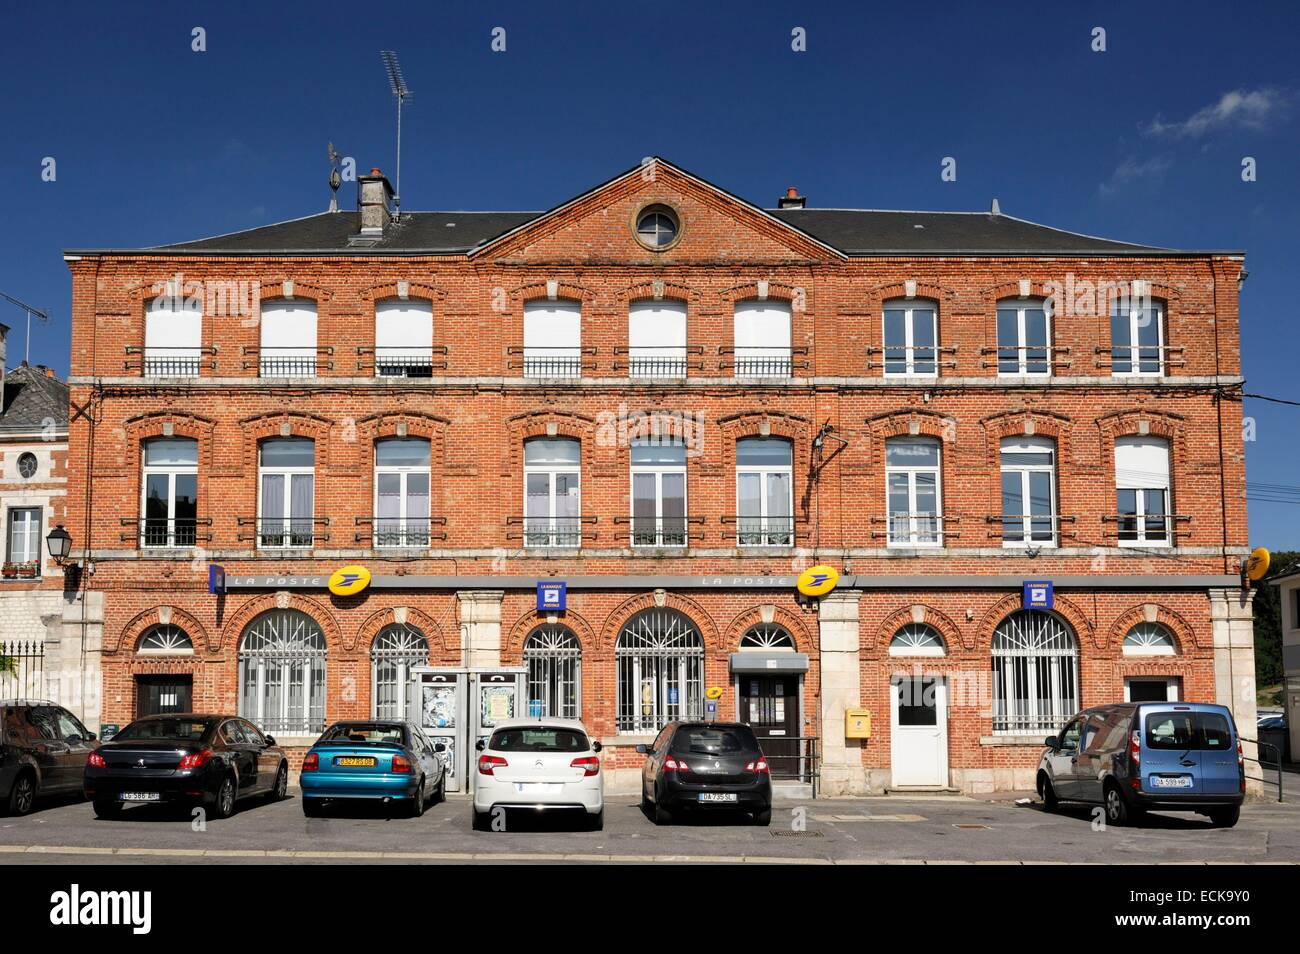 France, Ardennes, Signy l'Abbaye, cars parked in front of the post office - Stock Image